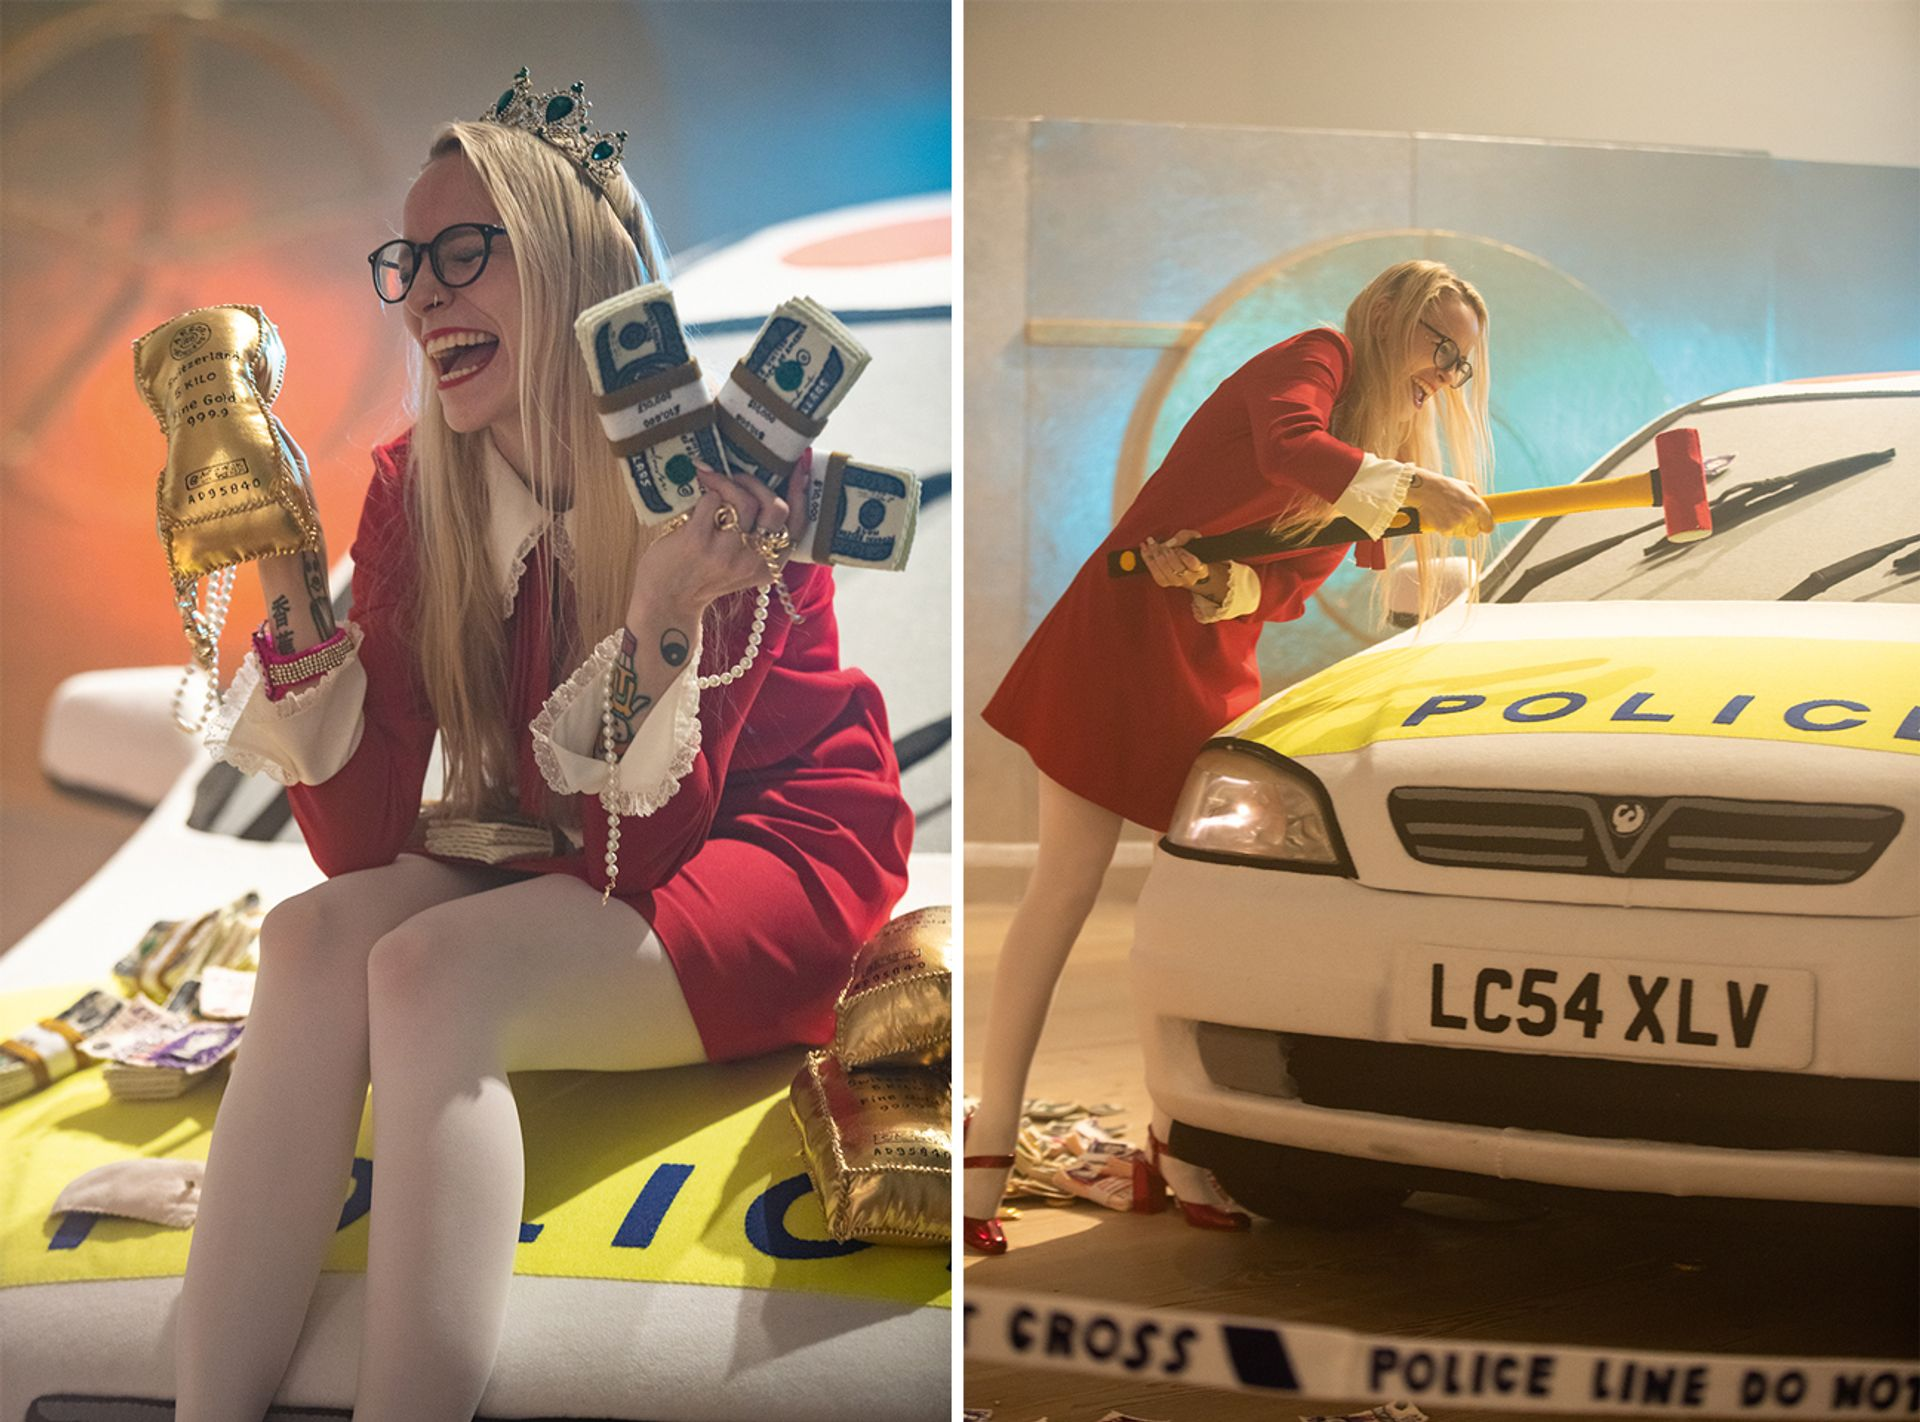 Fair cop: artist Lucy Sparrow with her installation of a heist, with cash, stolen art and a police car made from felt Courtesy of DK Photos